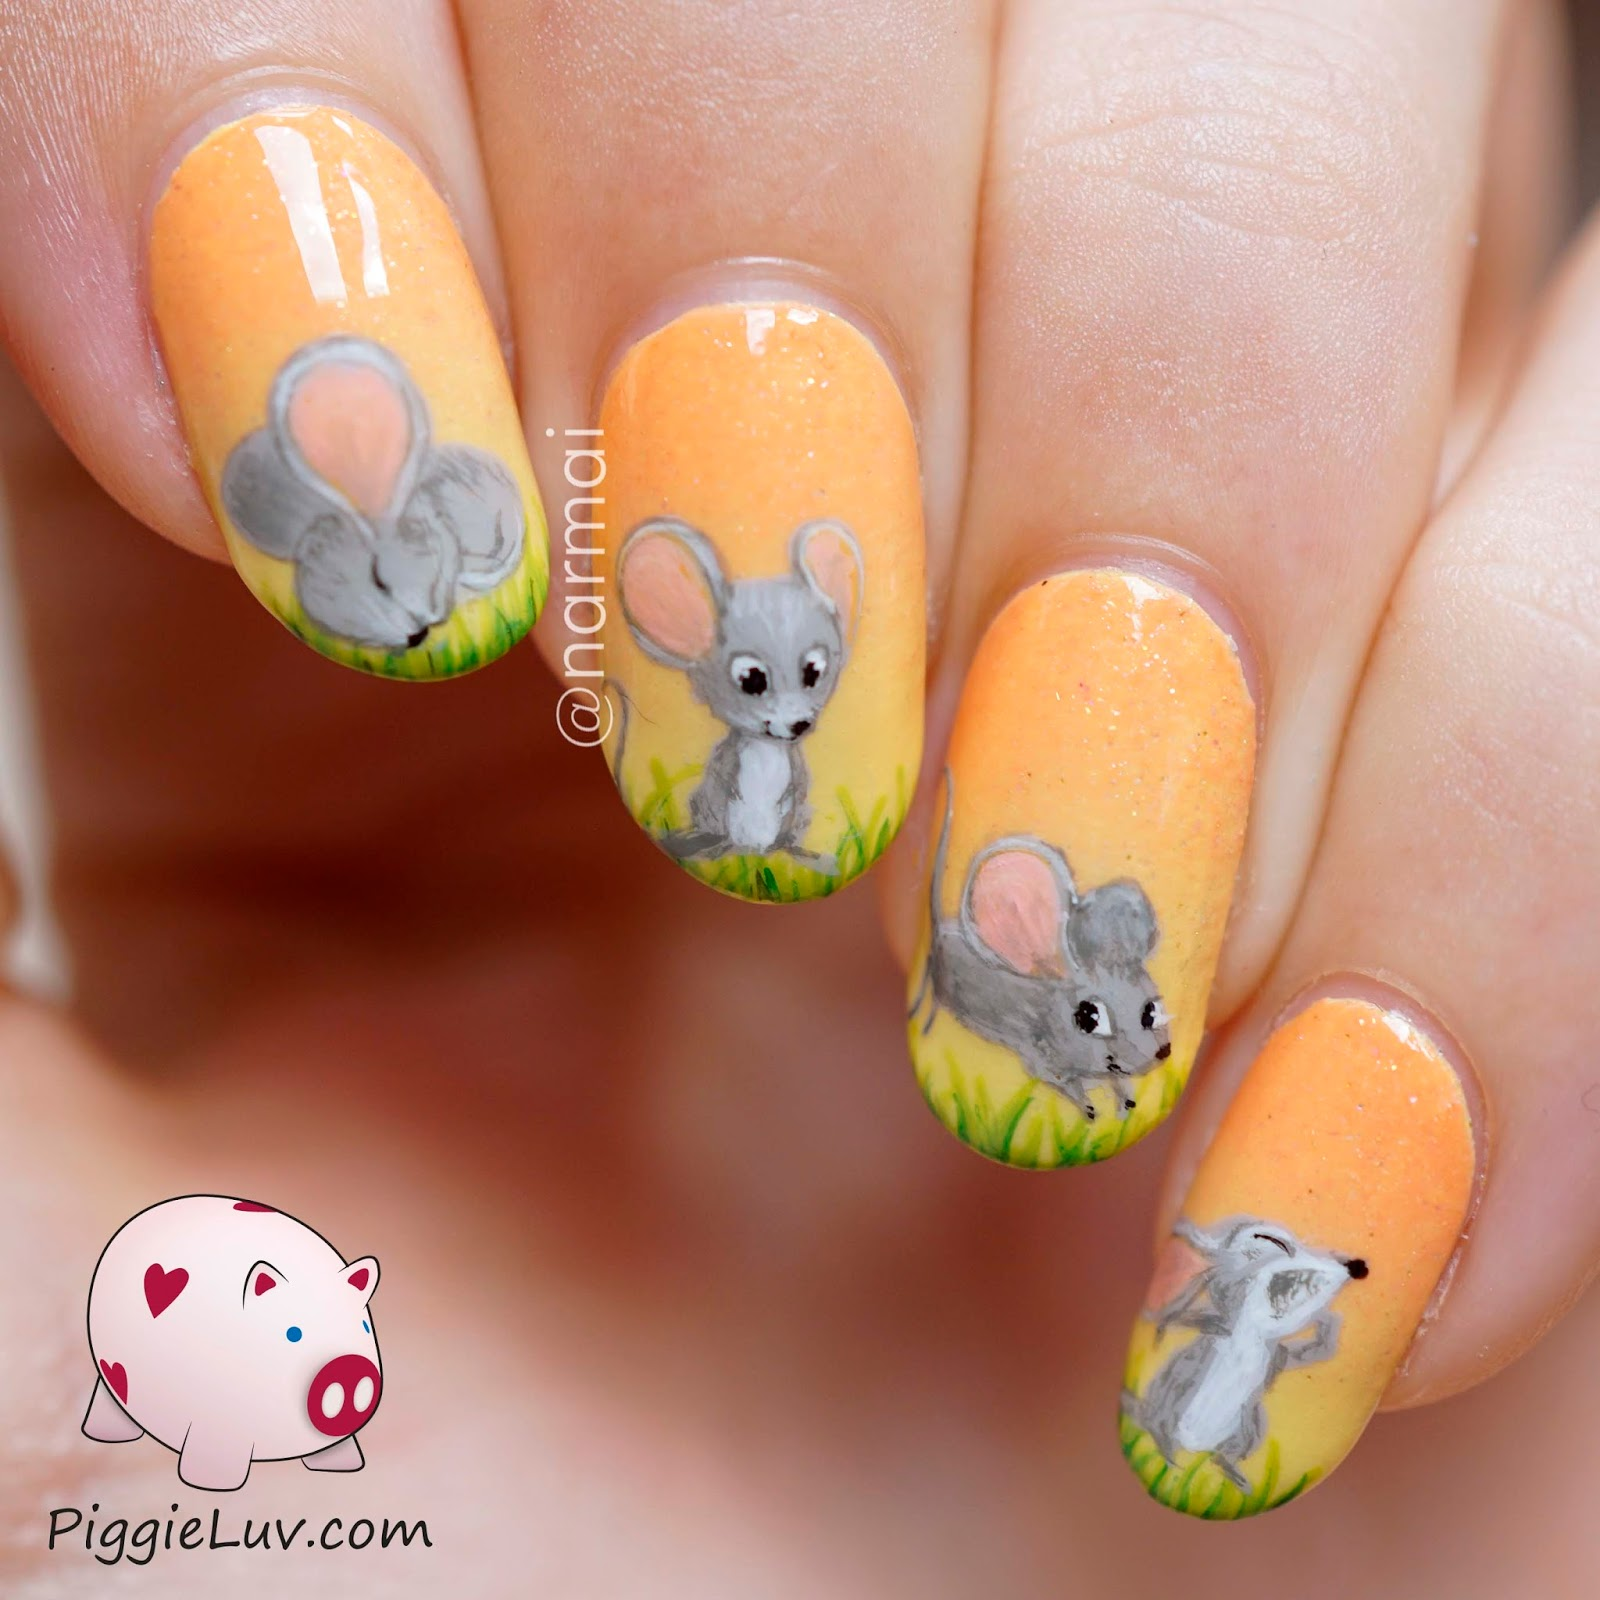 Piggieluv Freehand Adorable Mouse Nail Art